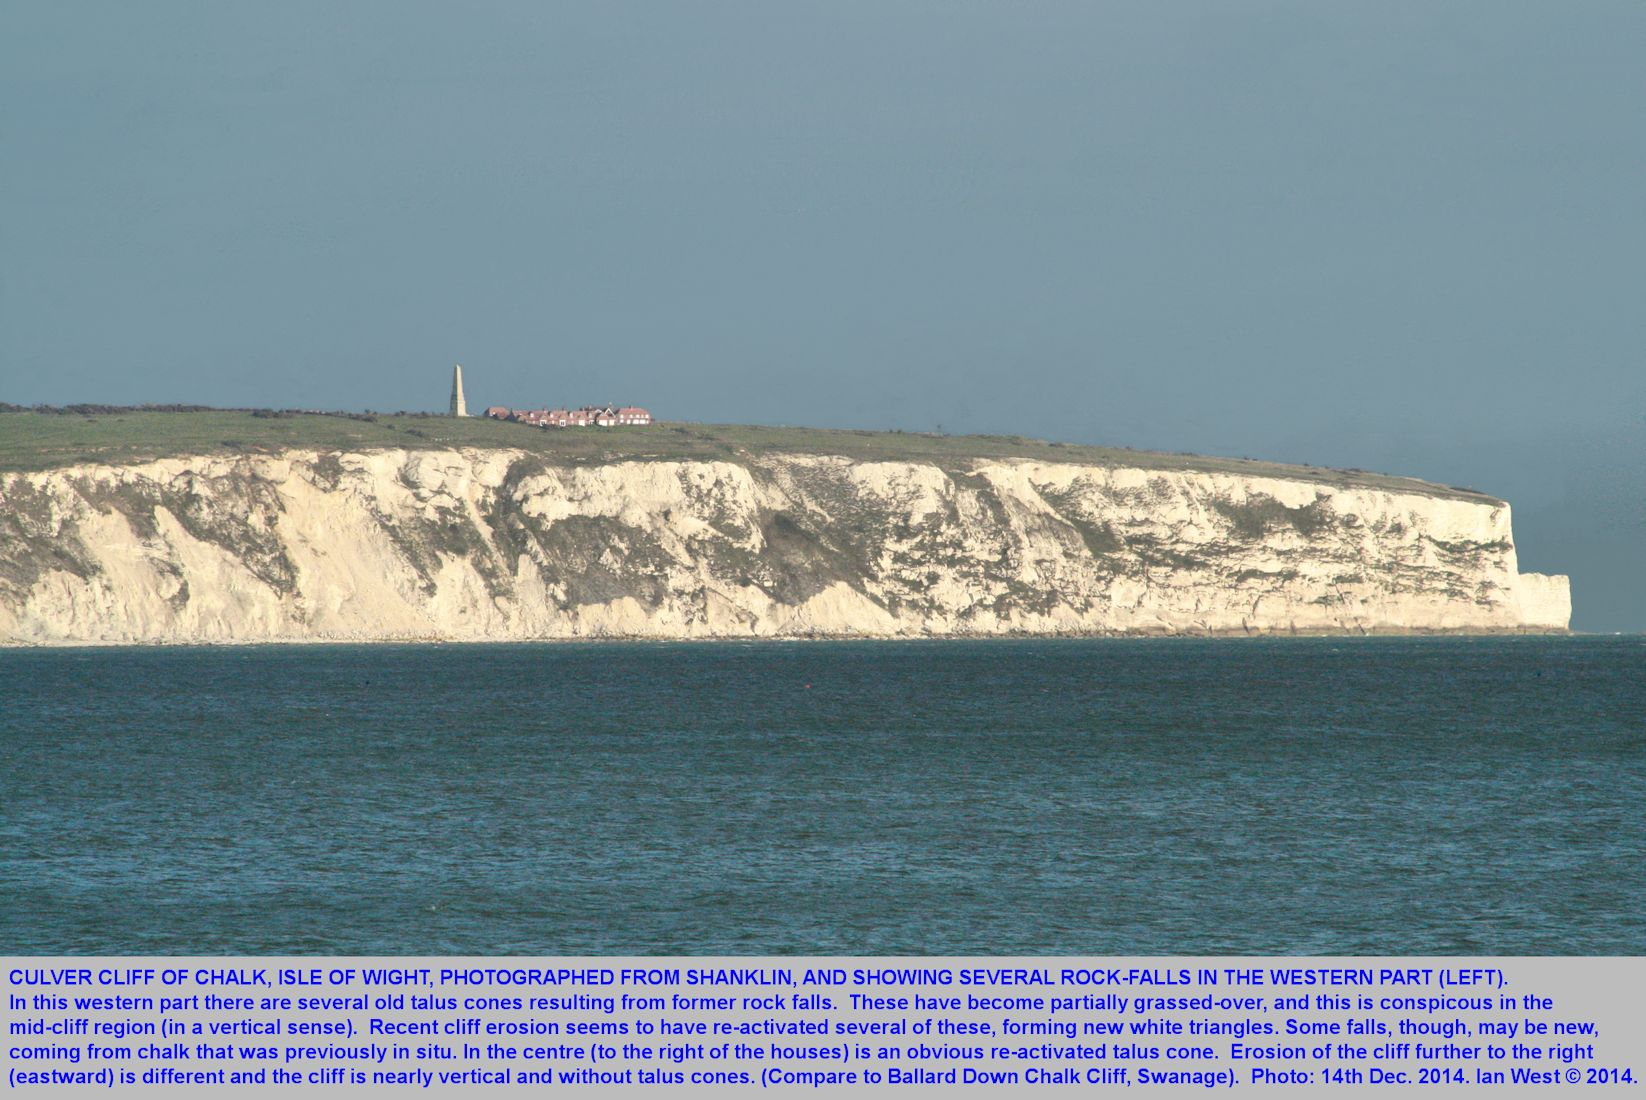 A view from Shanklin, Isle of Wight, of the Culver Cliff, of Chalk, showing the effects of cliff-falls and eroding cones of chalk talus